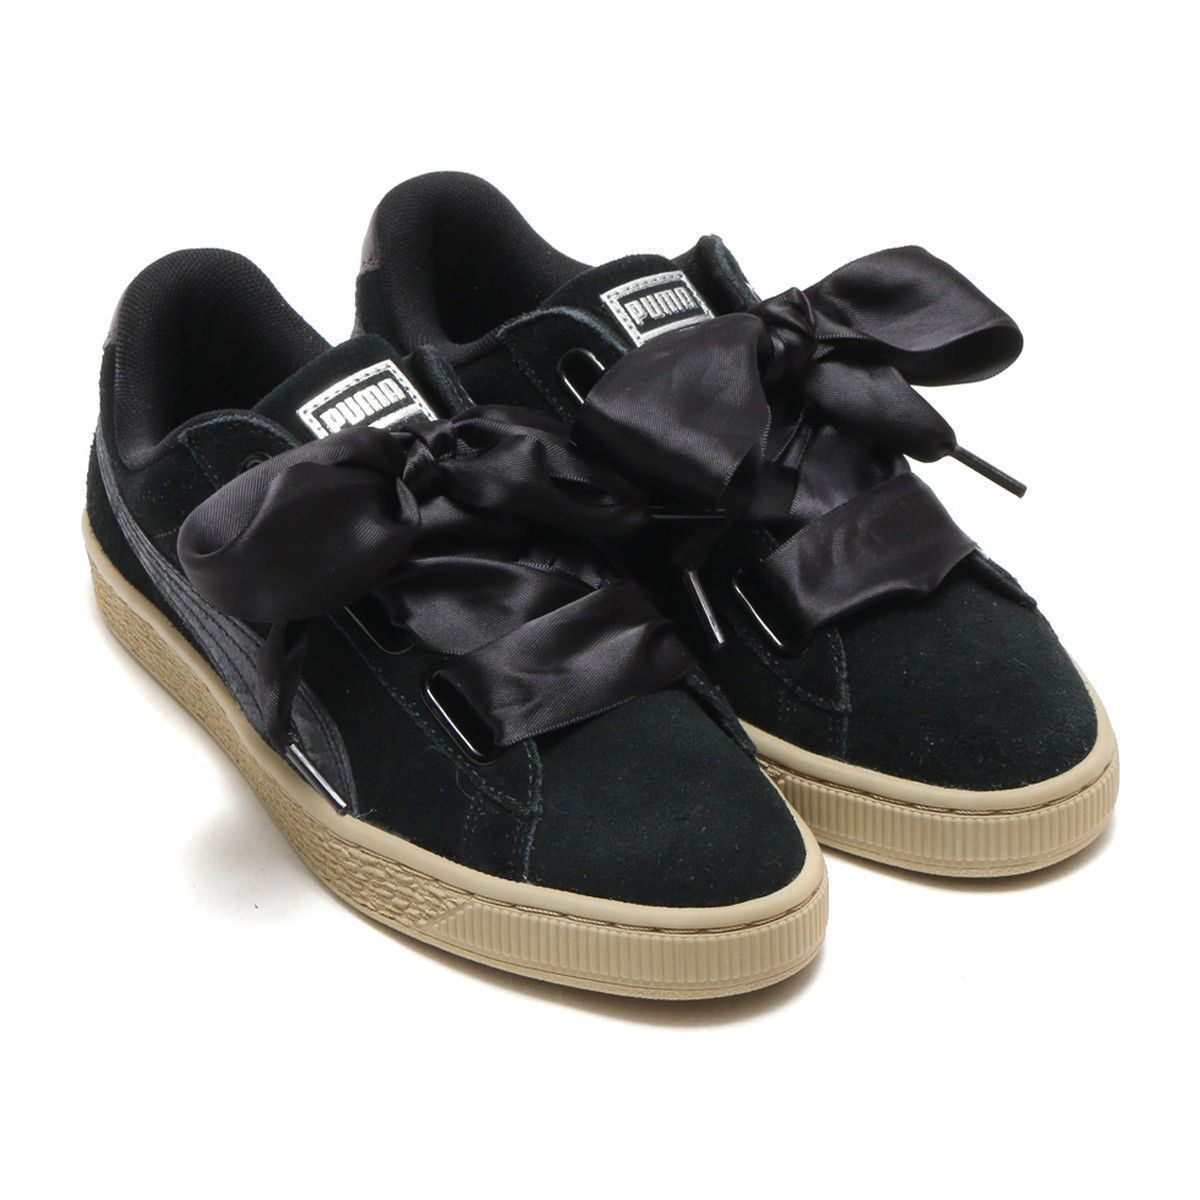 Puma Black Sneaker Suede eBay Heart Athletic Women's 03 364083 Safari xrq1Xr8